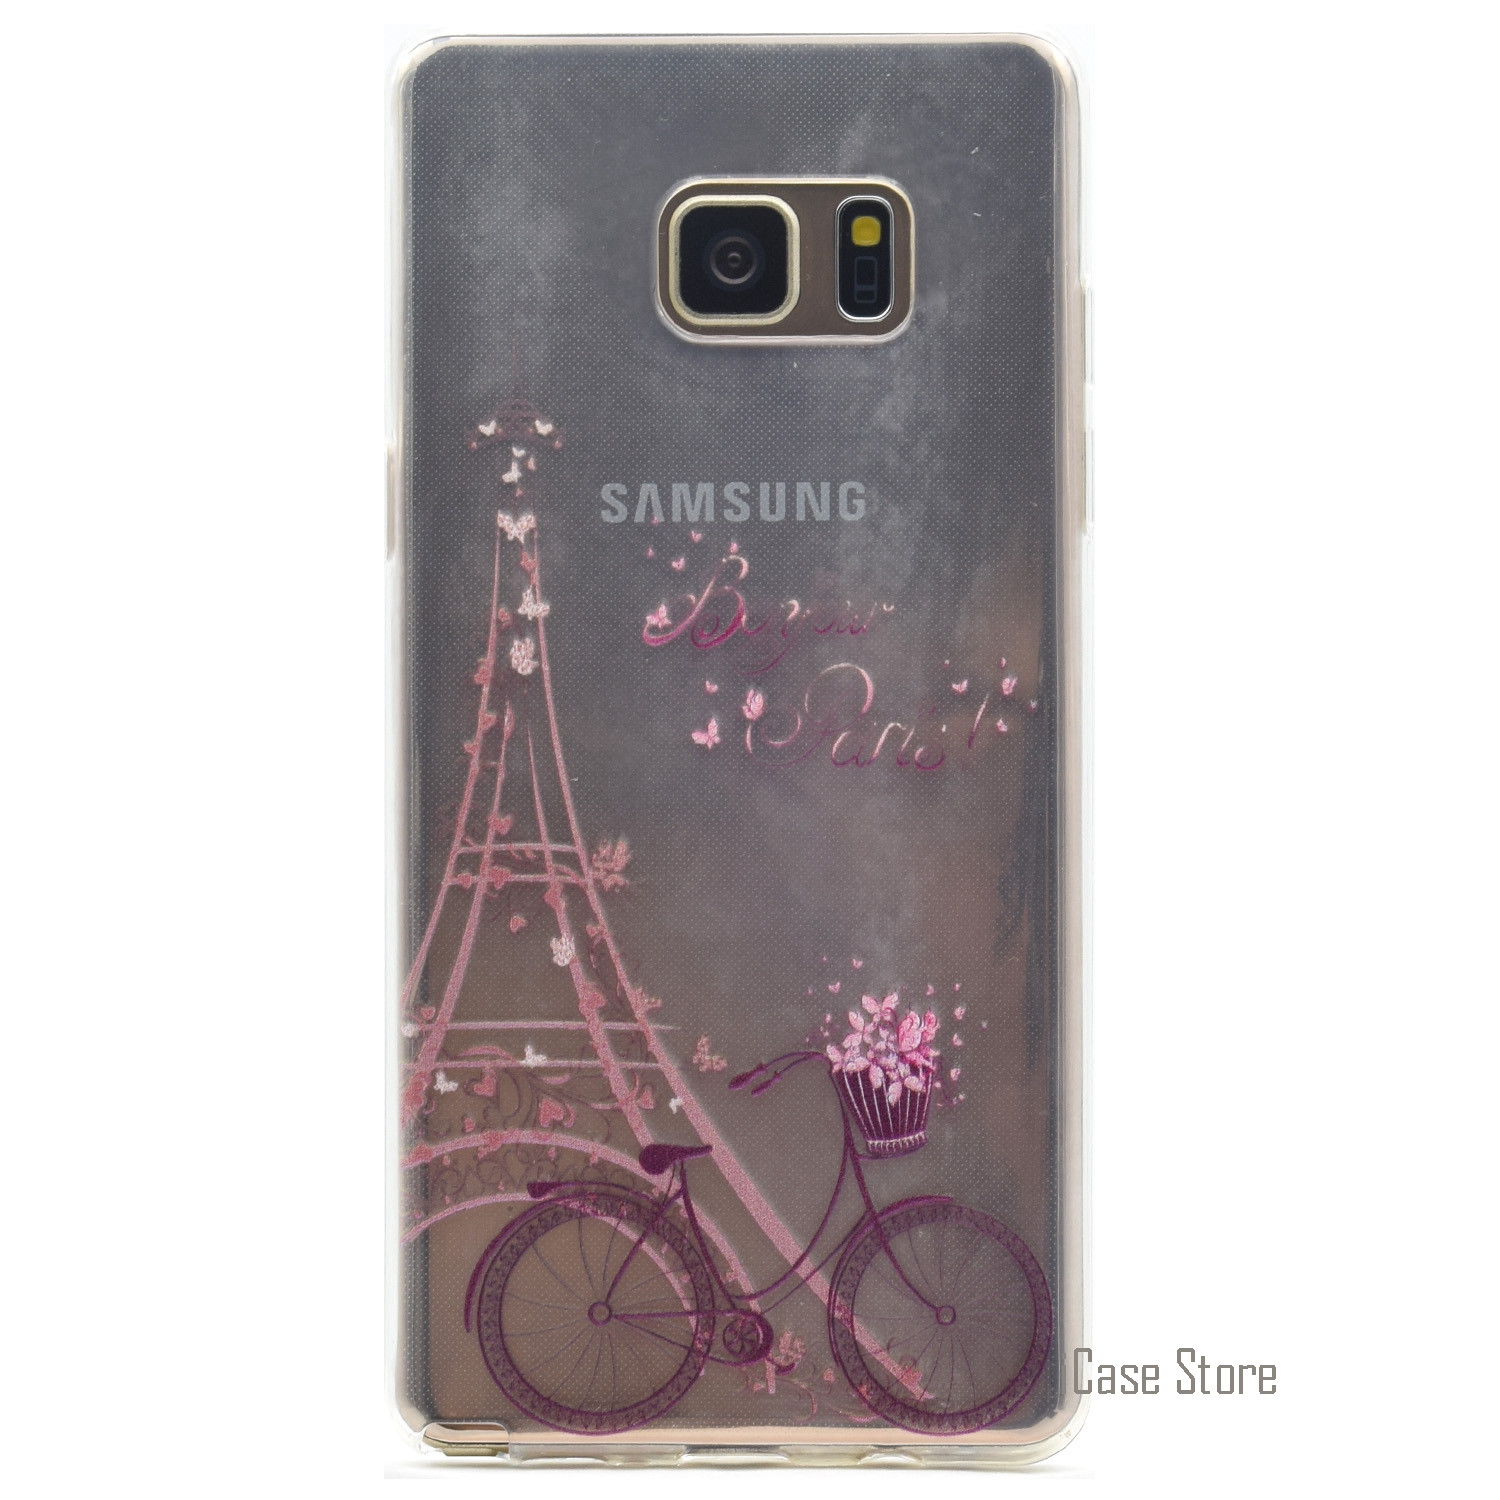 High Quality Cute Cartoon Phone Case For Samsung Galaxy Note 5 Soft Gel Phonet Casi Pone Csse Cover Casa For Samsung N9200 N9208